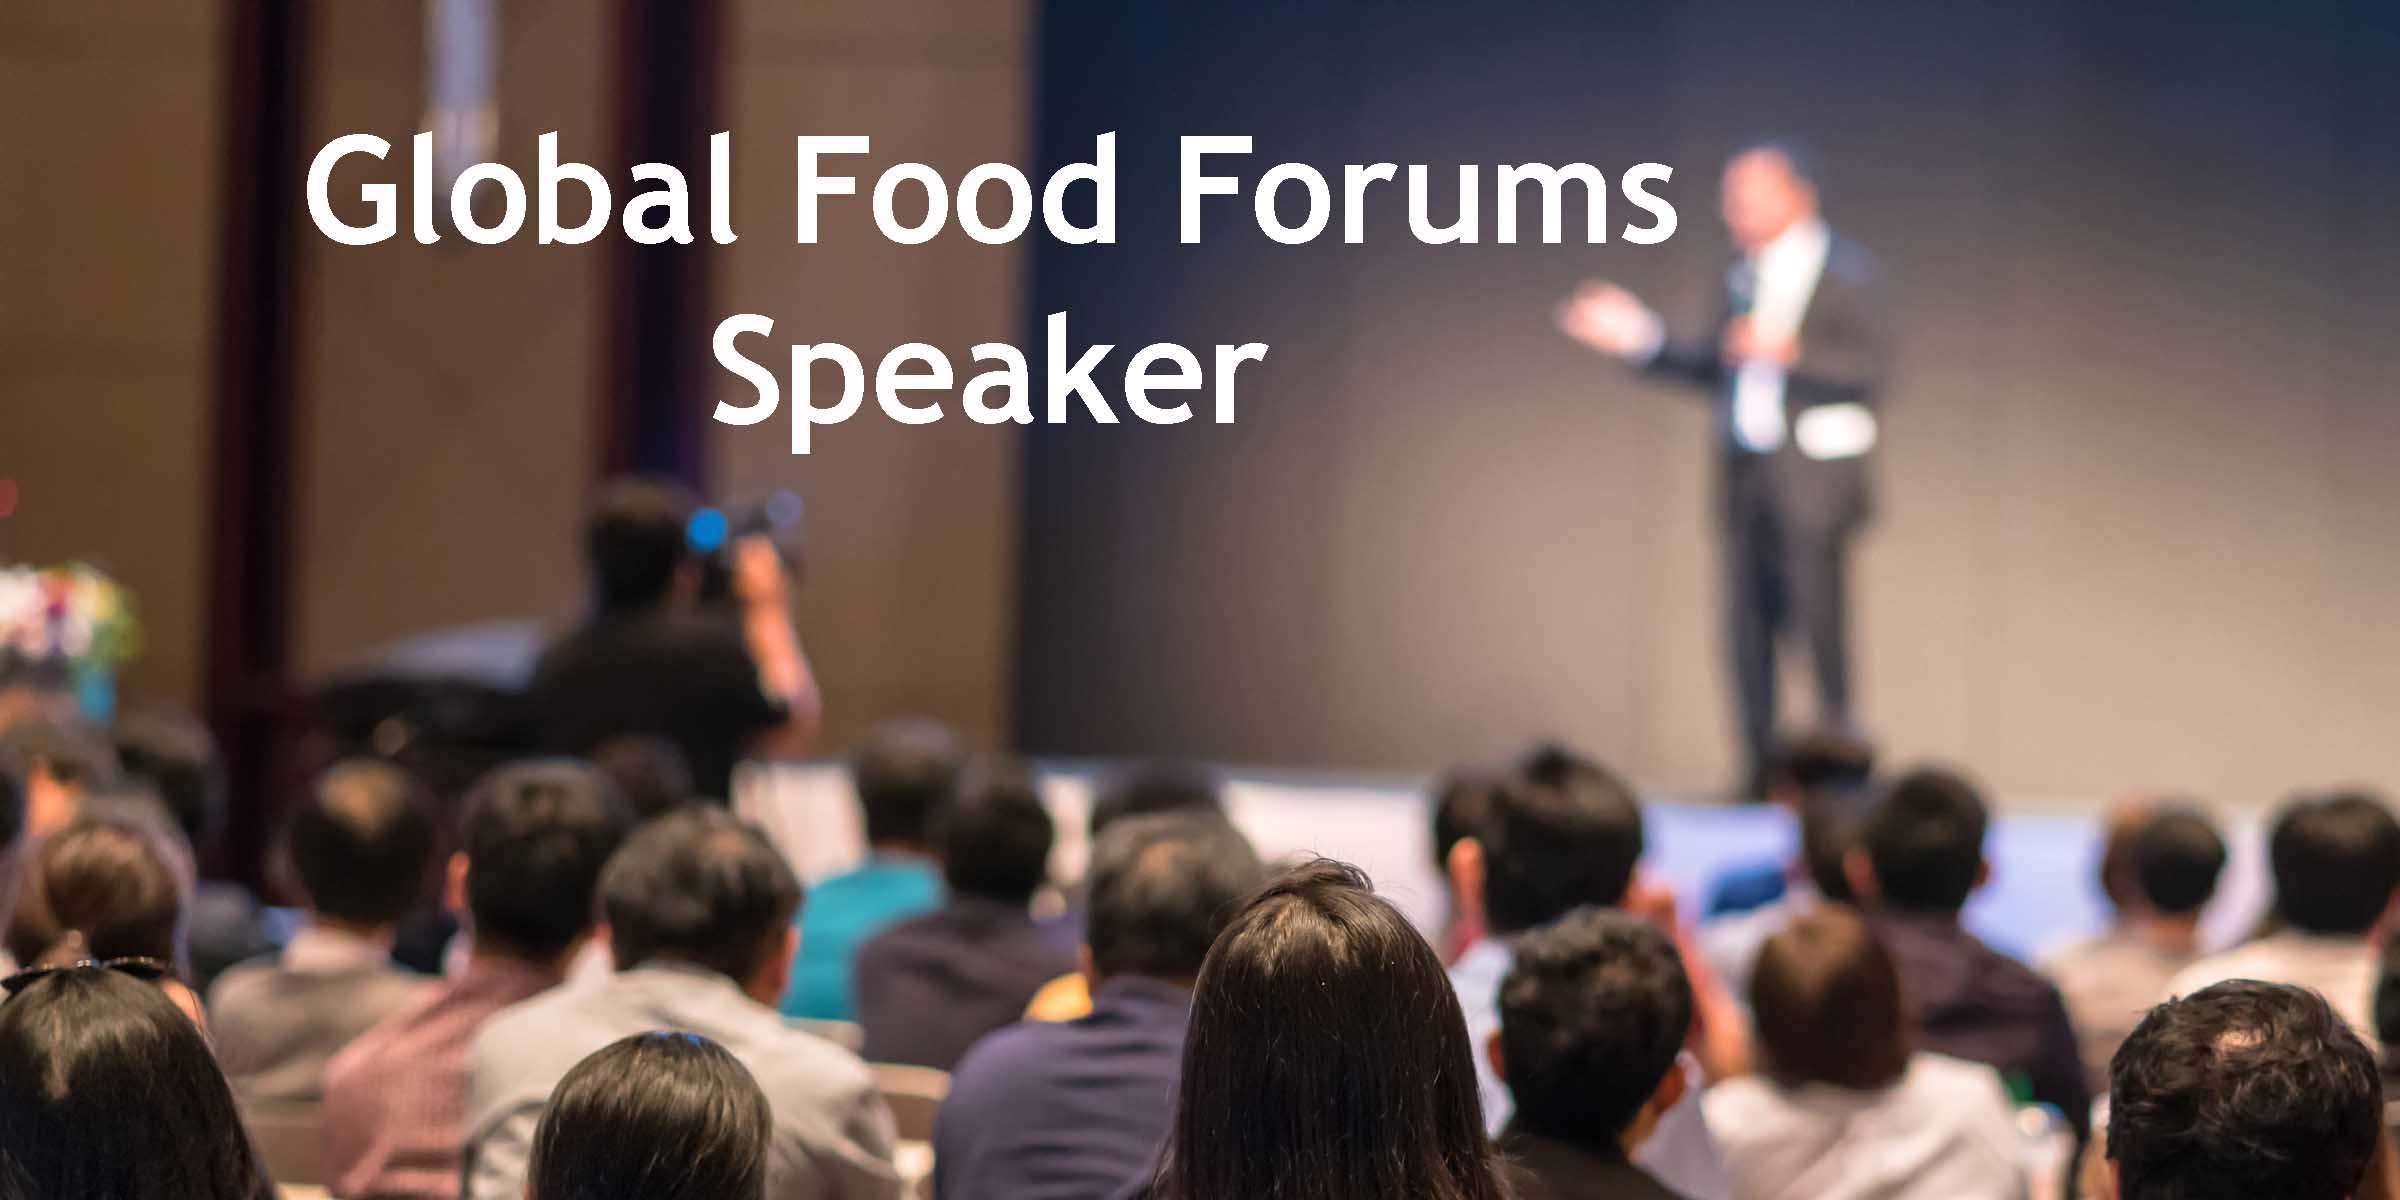 Global Food Forums Speaker 4